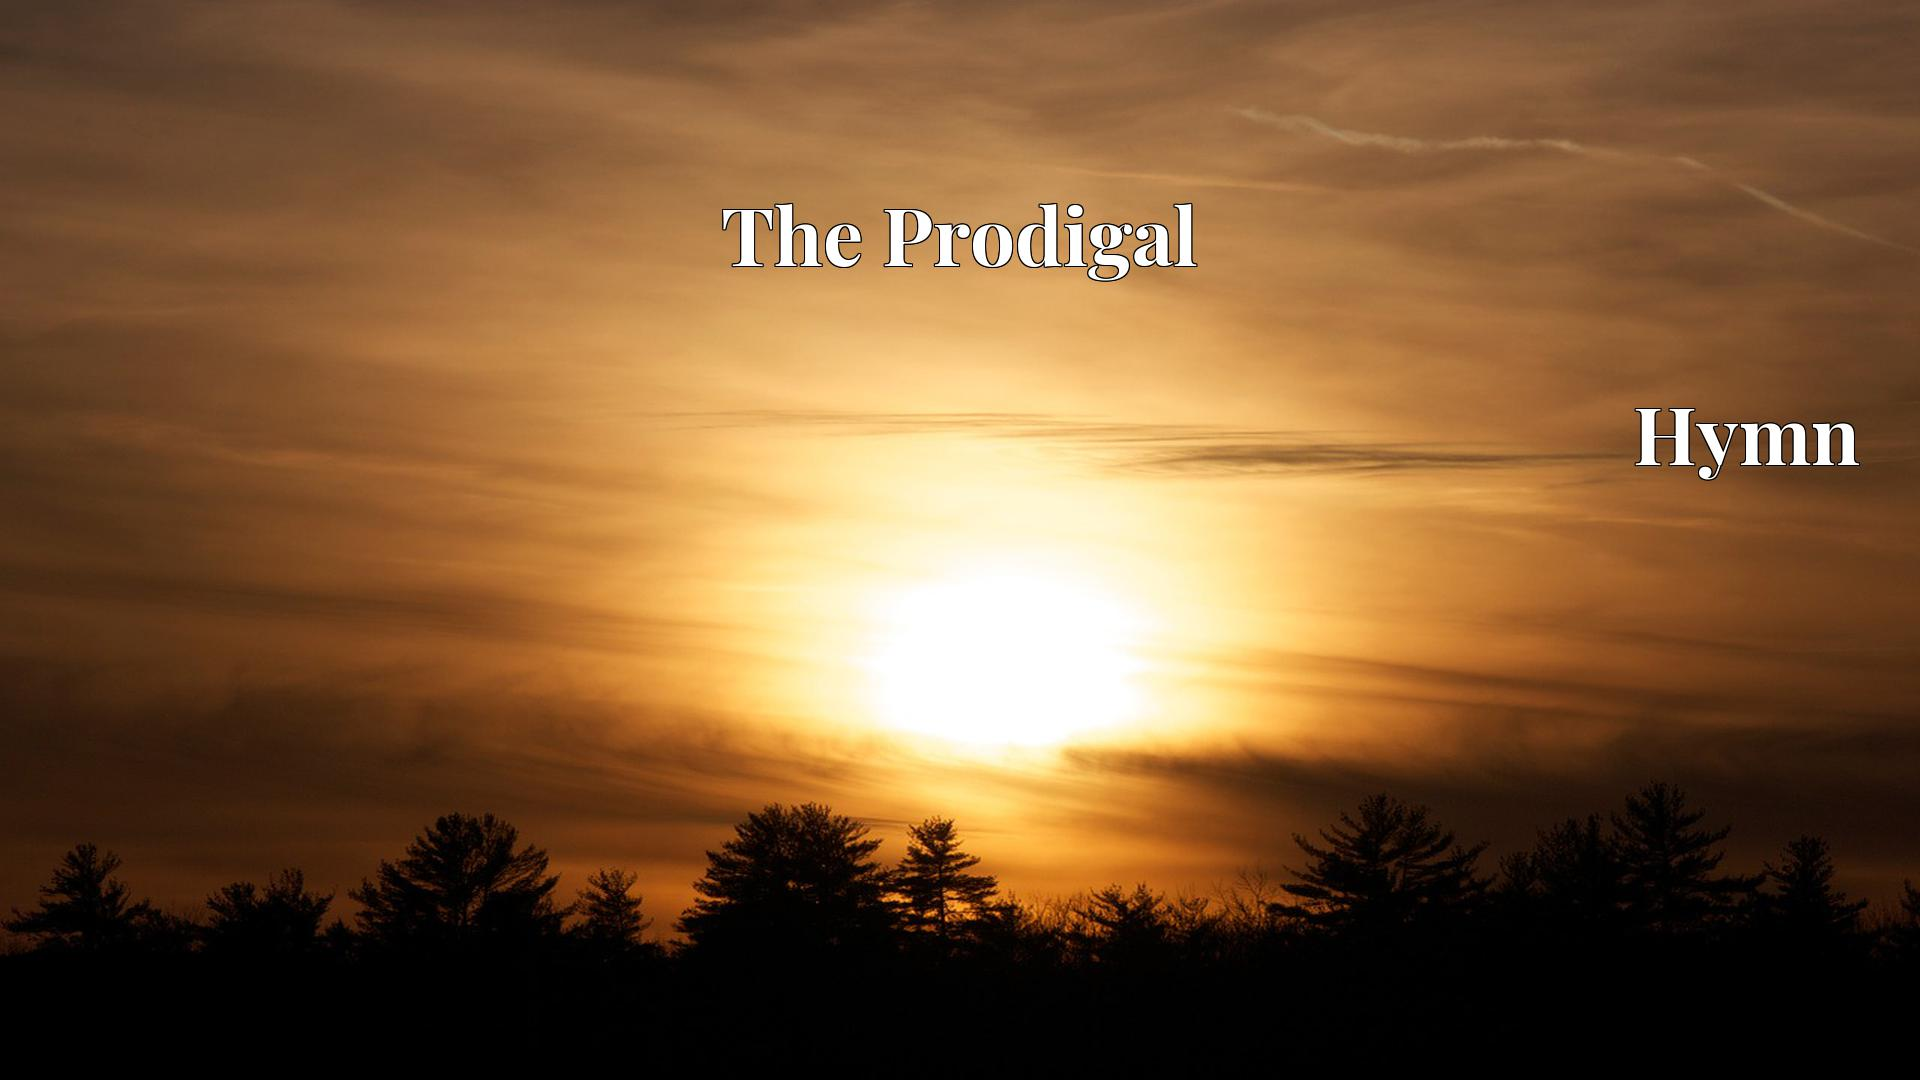 The Prodigal - Hymn